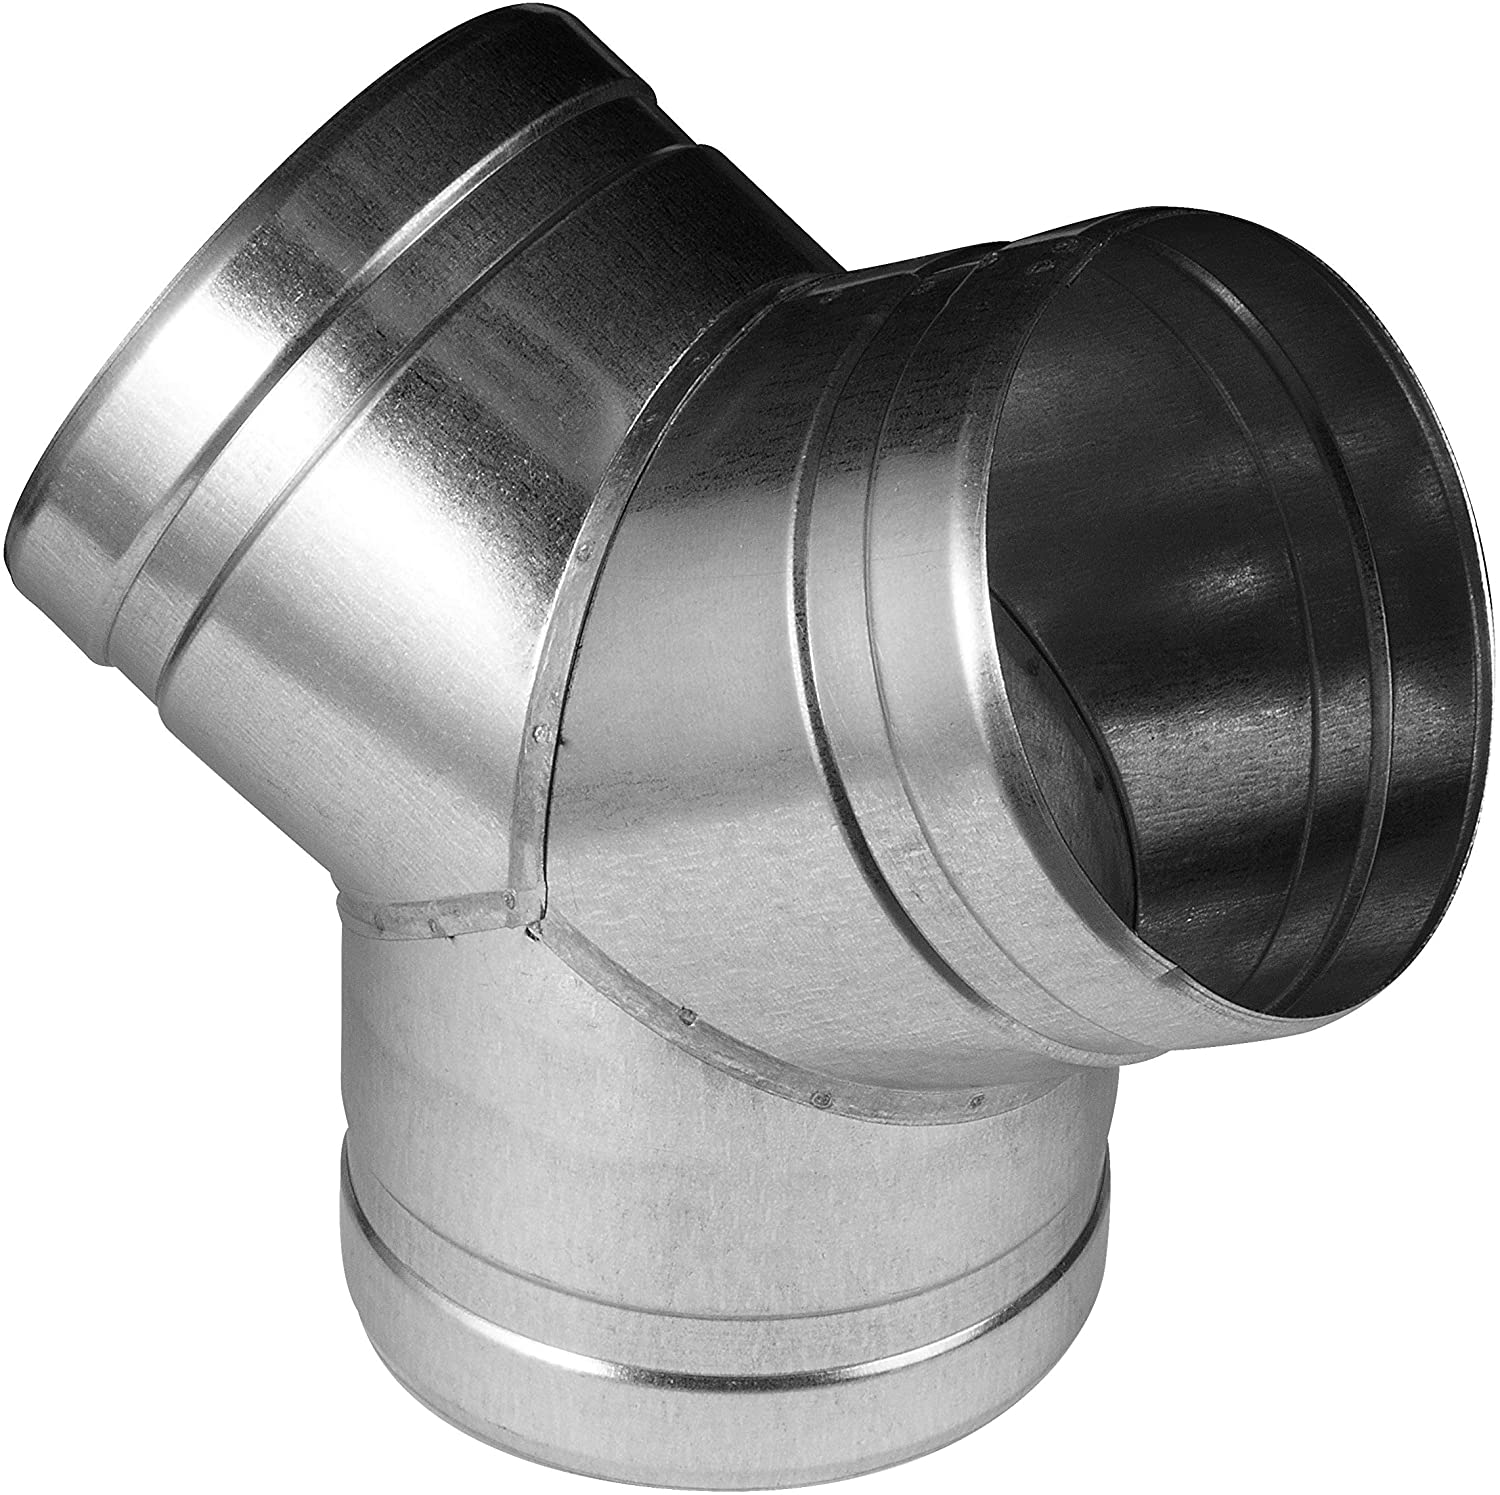 Duct Splitter for Exhaust Fan Dryer Vent Hose 3 Way Duct Hose Connector, T Shape, T Joint Metal (4'' Inch, Y- Shape)